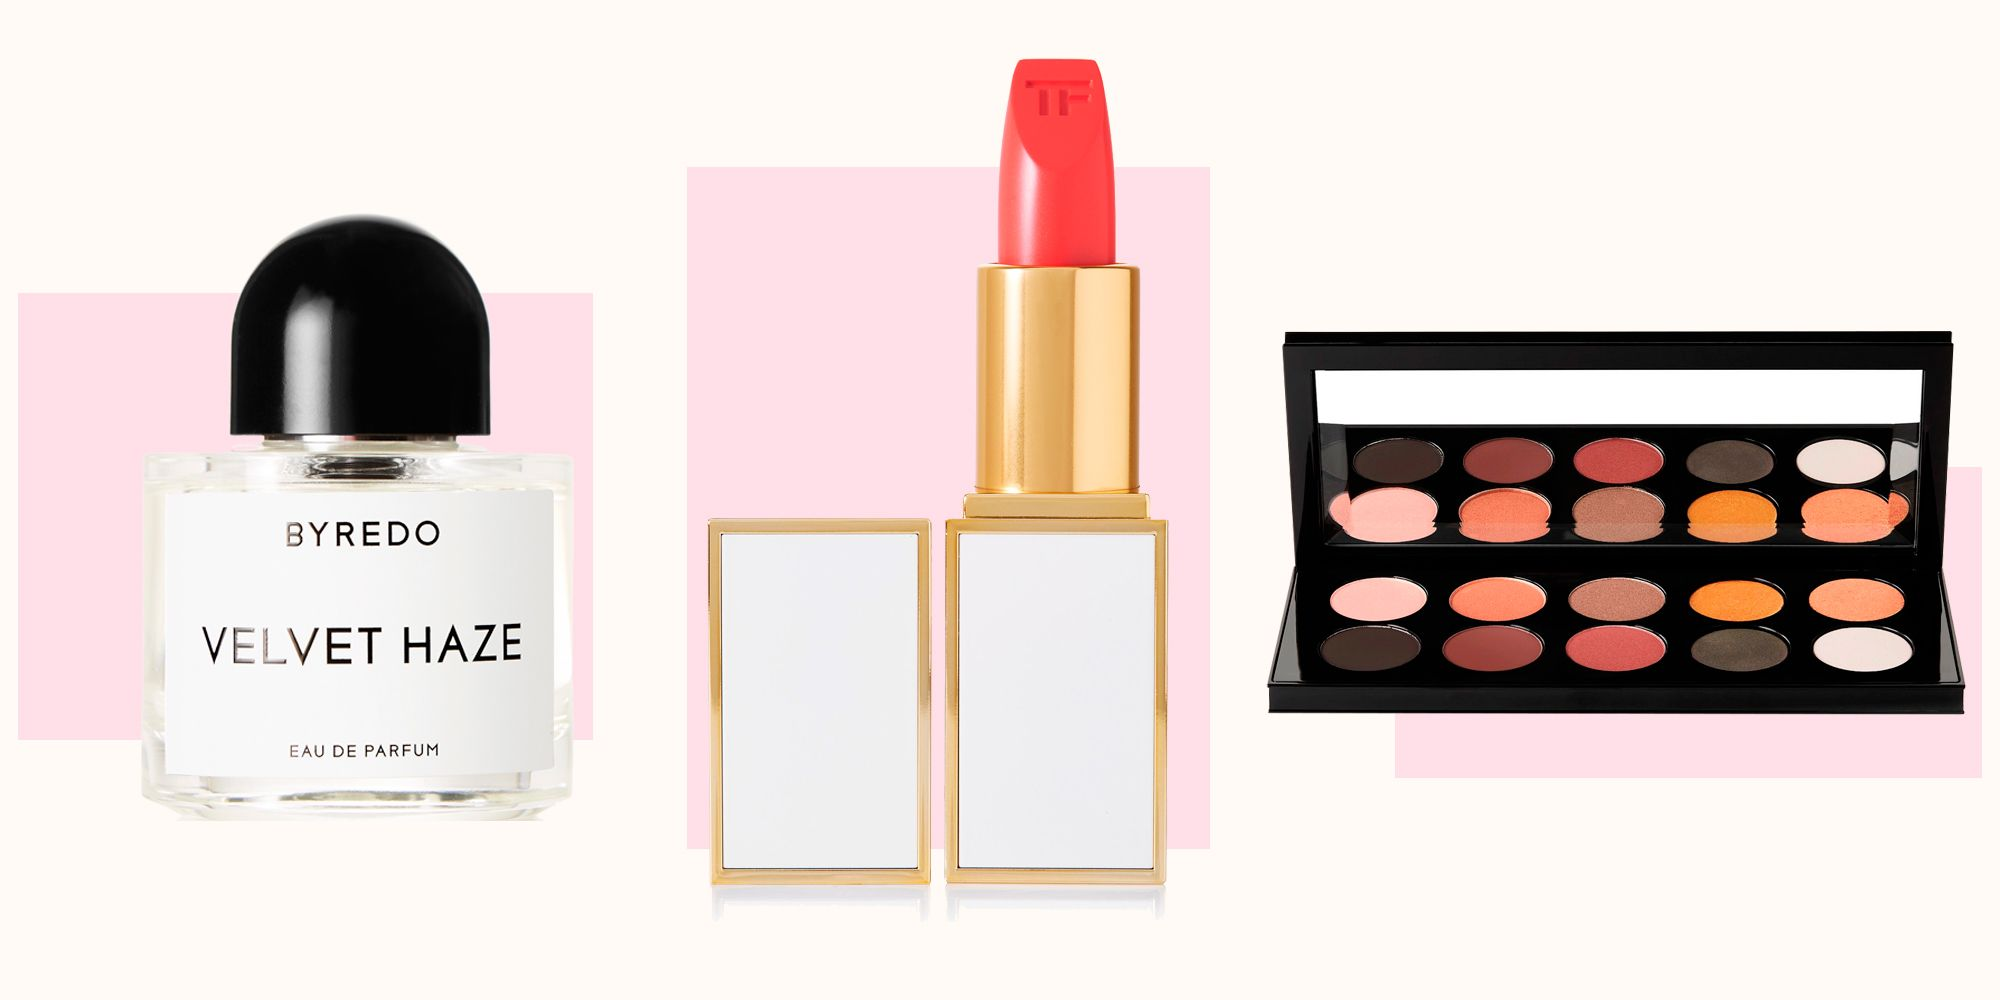 13 Net-a-Porter beauty products that are 100% worth the investment